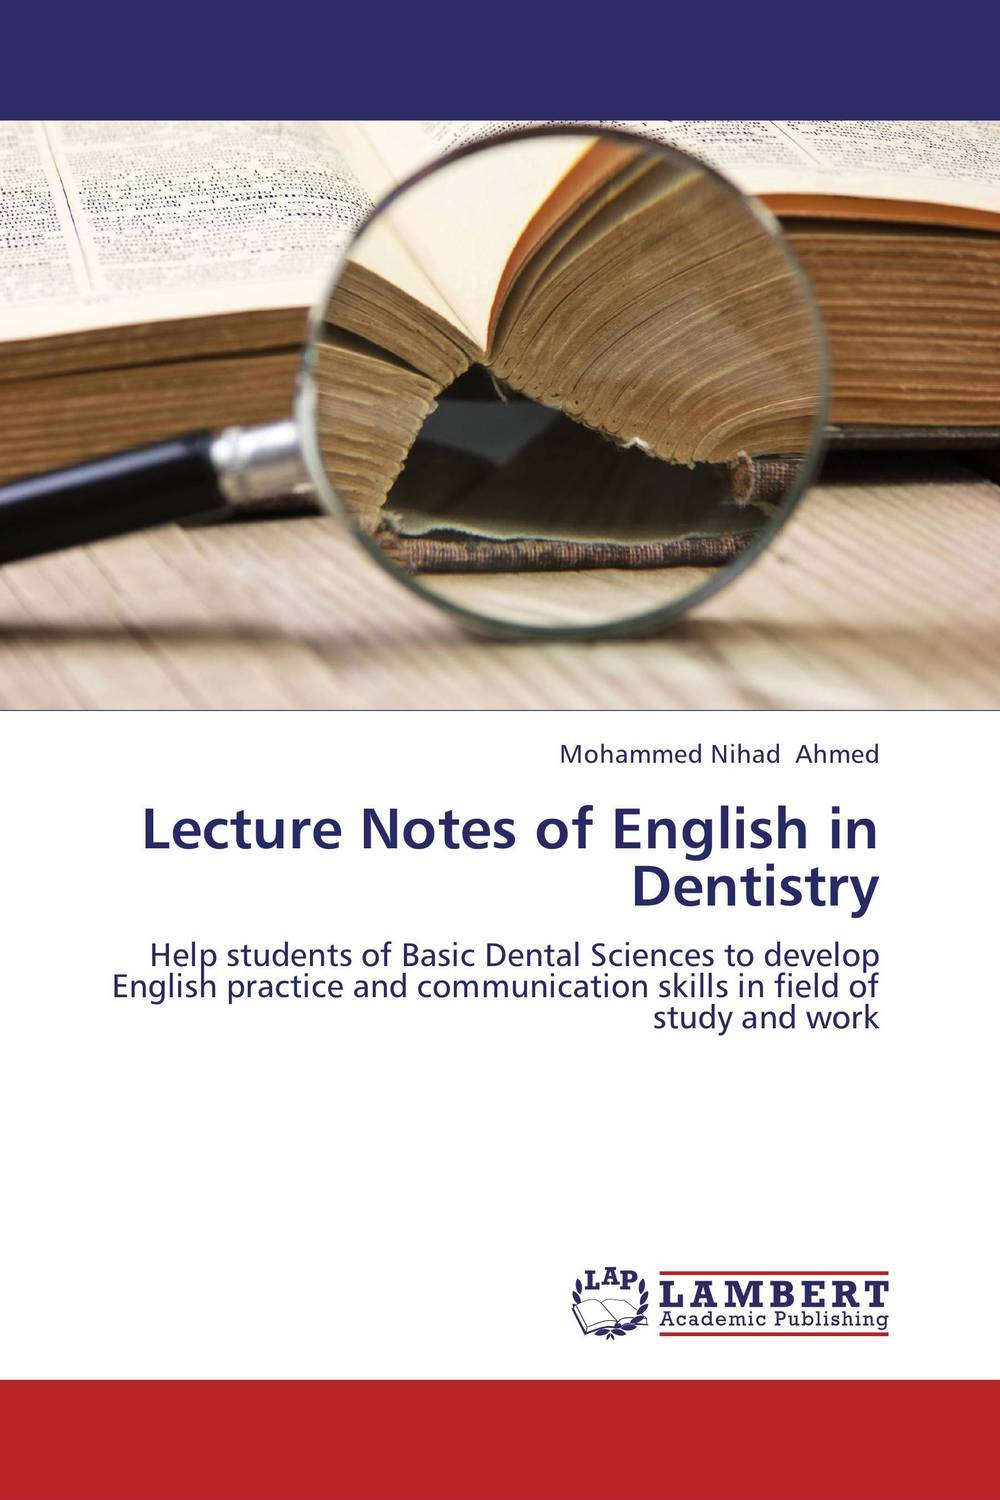 Lecture Notes of English in Dentistry karanprakash singh ramanpreet kaur bhullar and sumit kochhar forensic dentistry teeth and their secrets